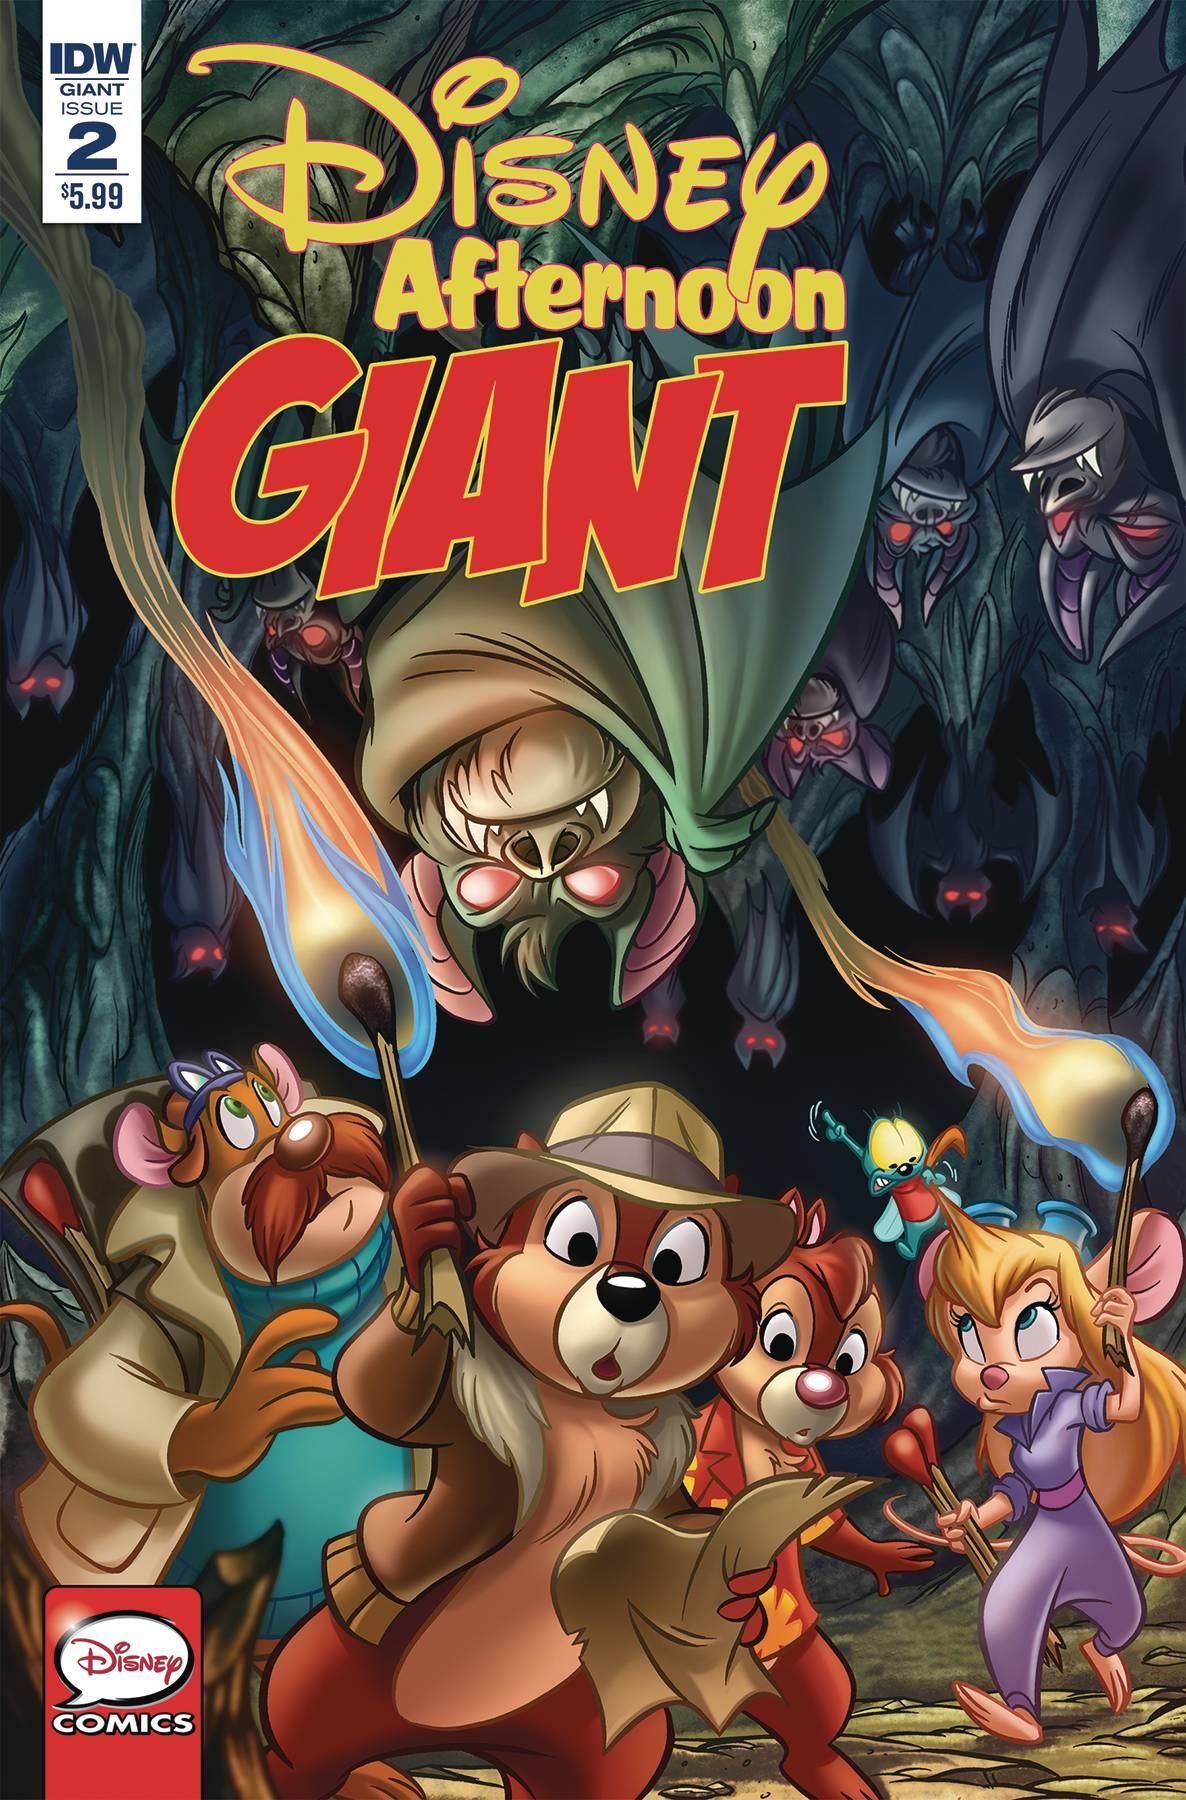 DISNEY AFTERNOON GIANT 2.jpg